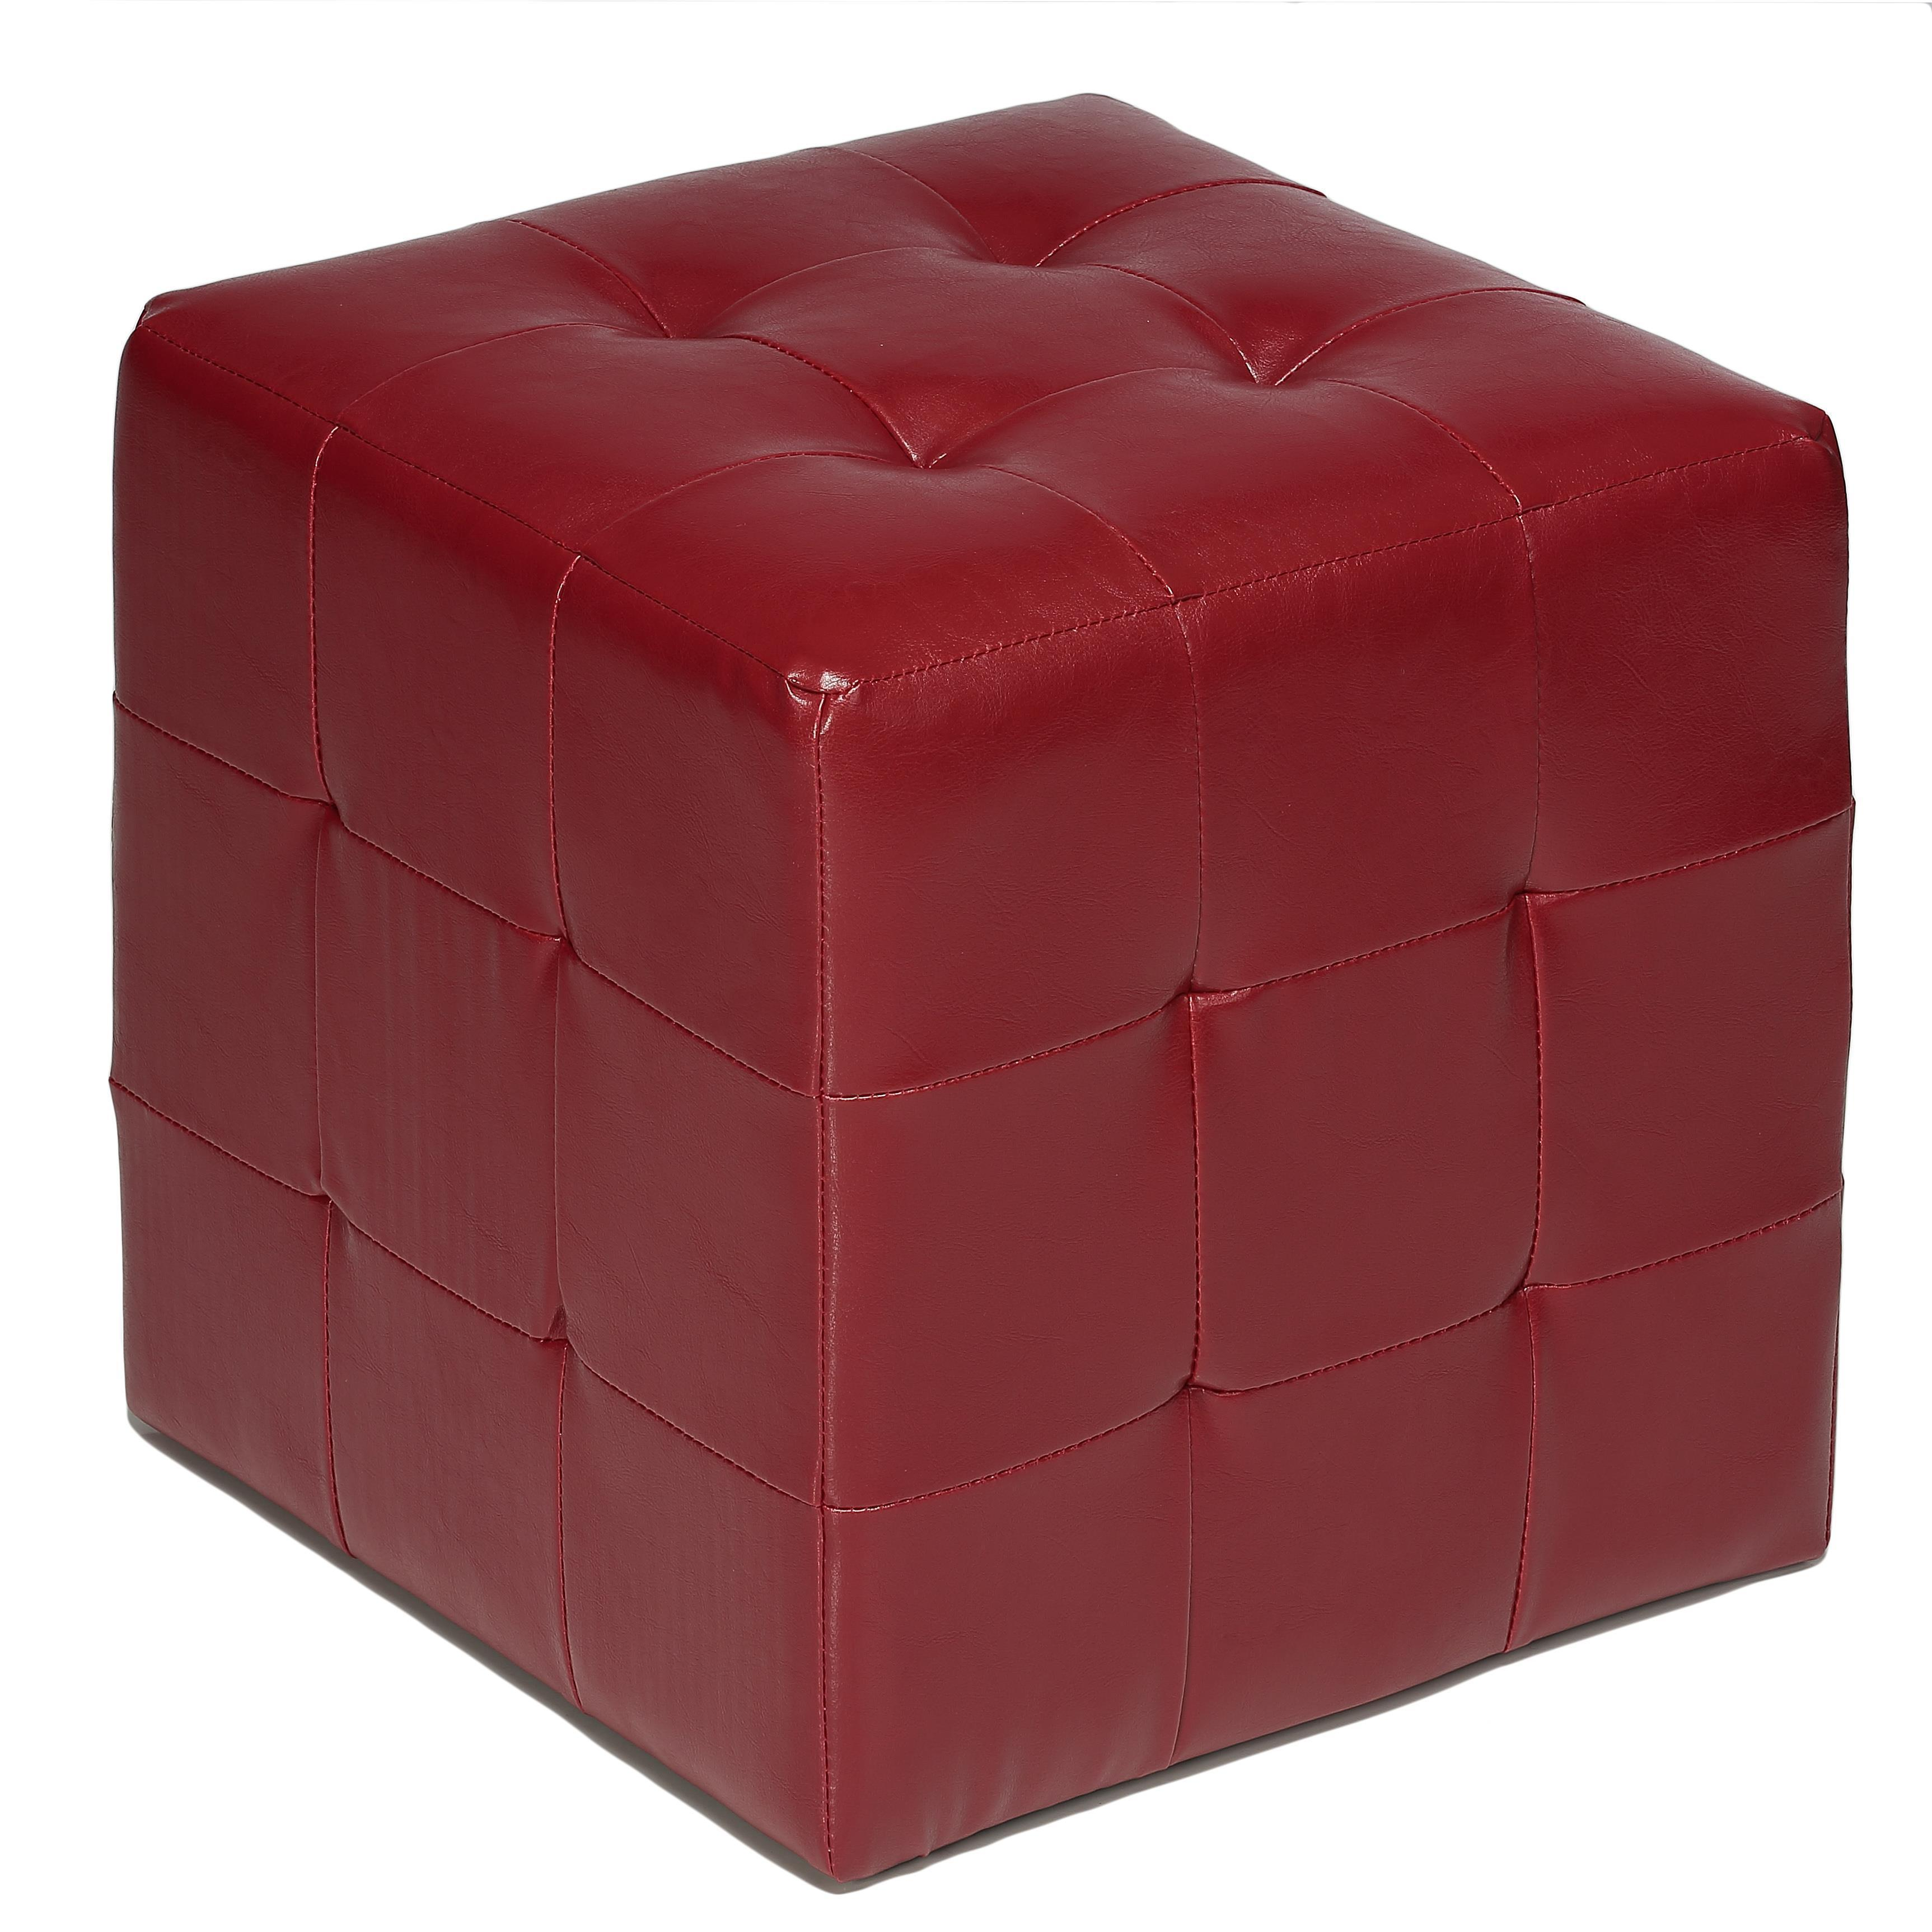 Porch Den Logan Square Lawndale Red Faux Leather Cube Ottoman Free Shipping On Orders Over 45 23122991